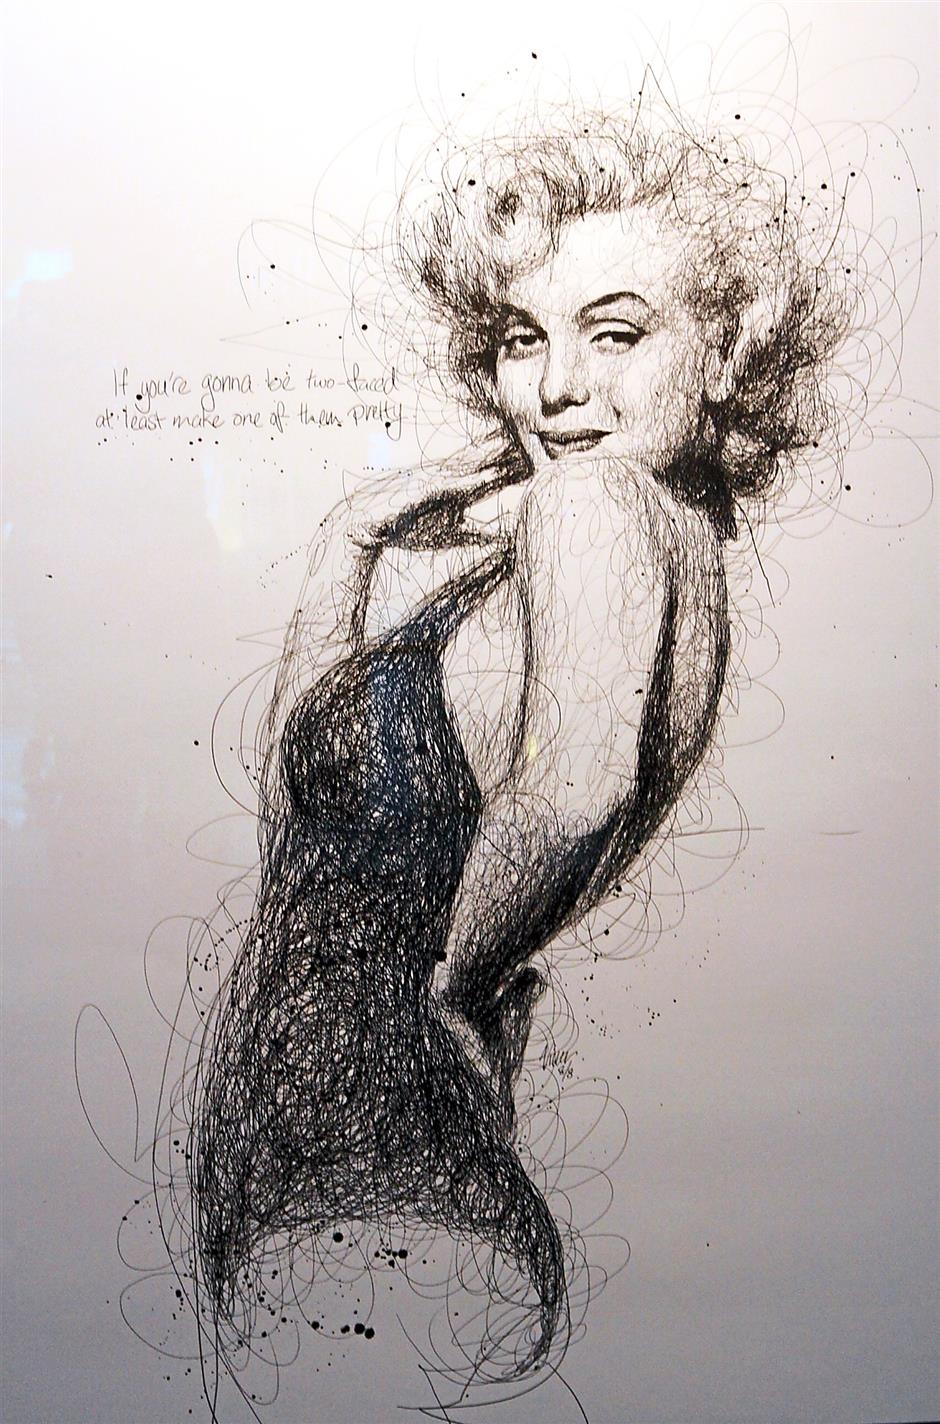 Oh hello there: A drawing of actress Marilyn Monroe by Low.